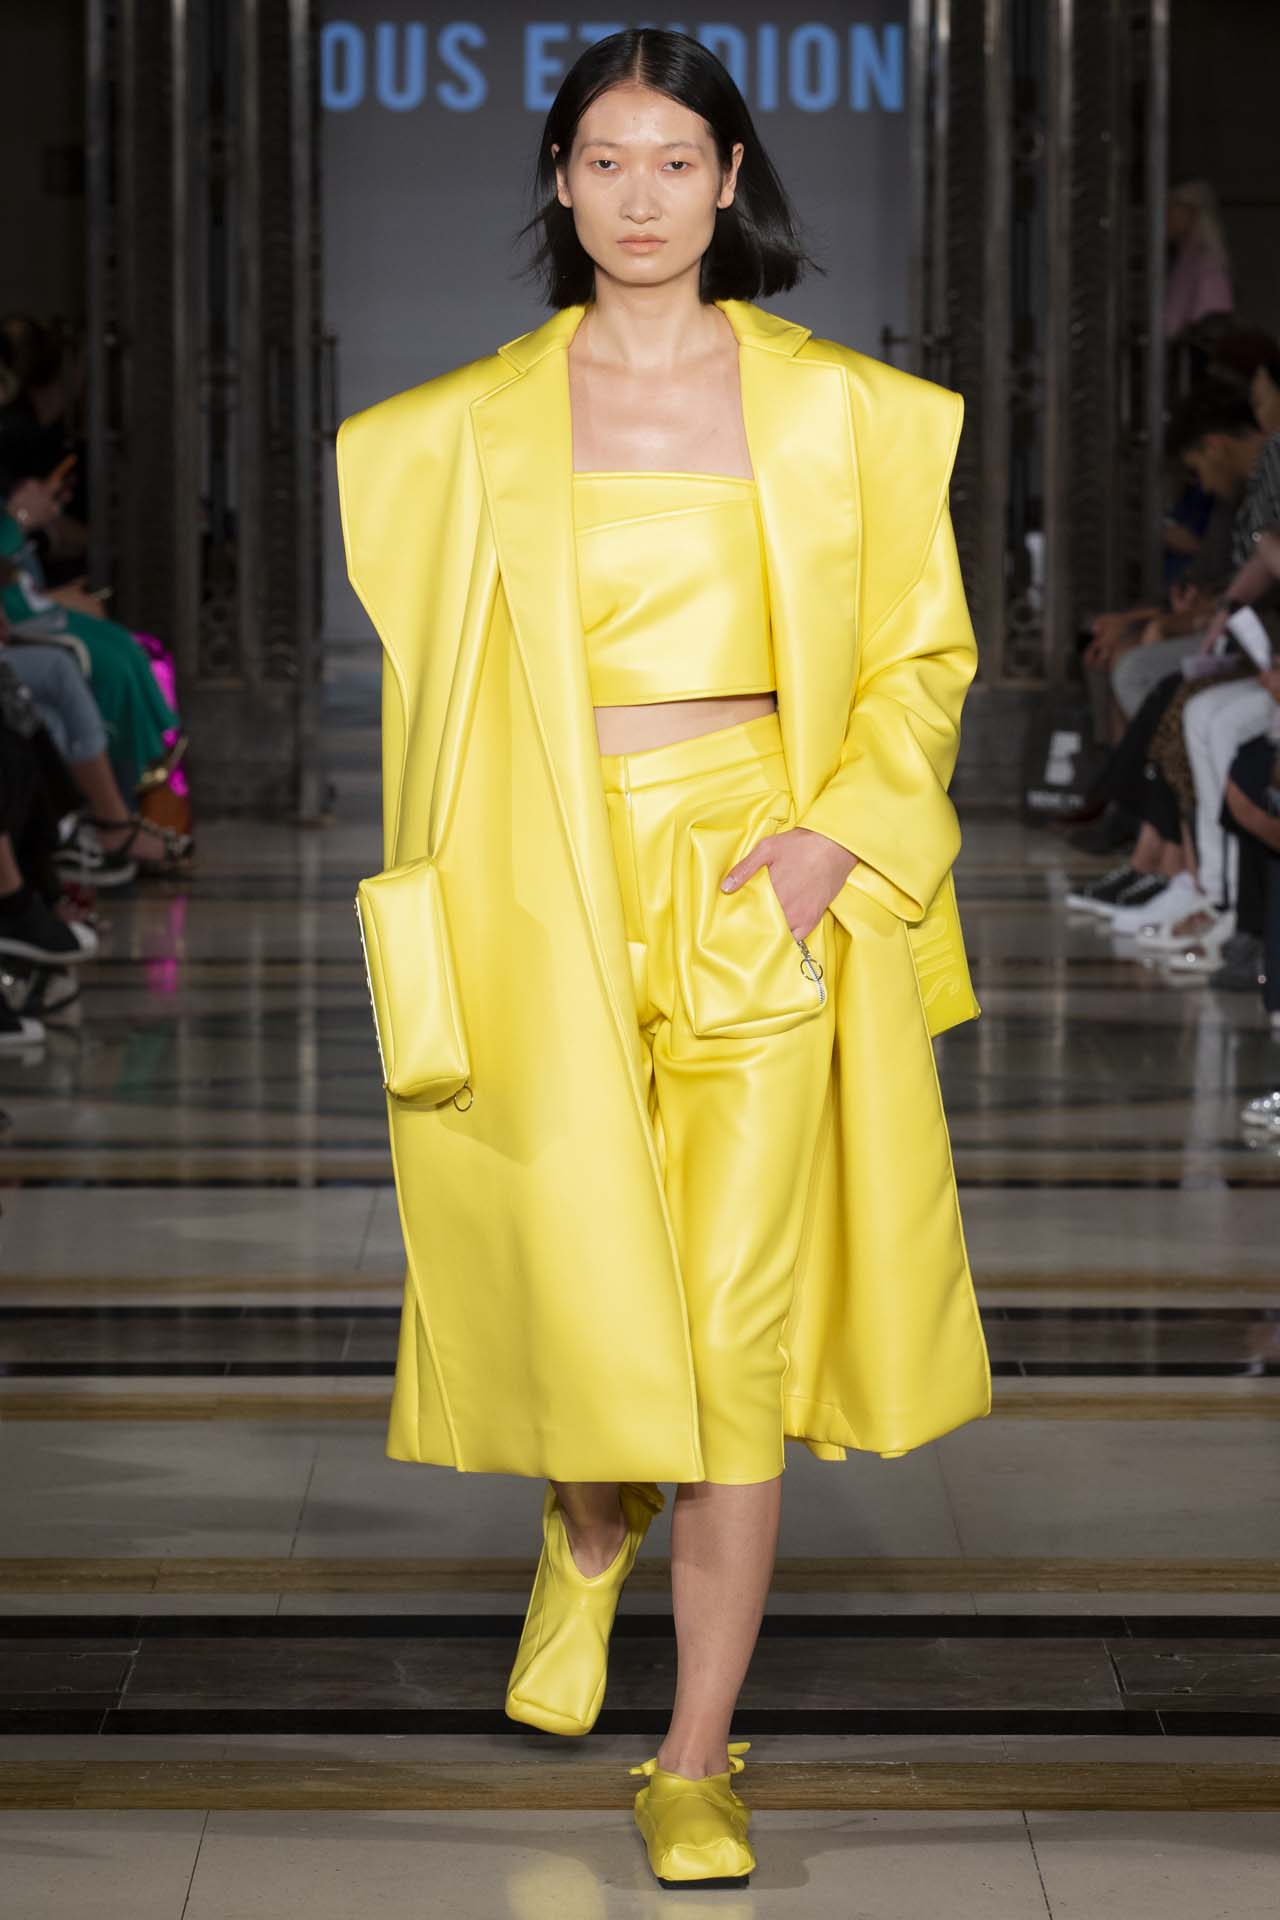 Nous etudions ones to watch fashion scout ss19 (2)